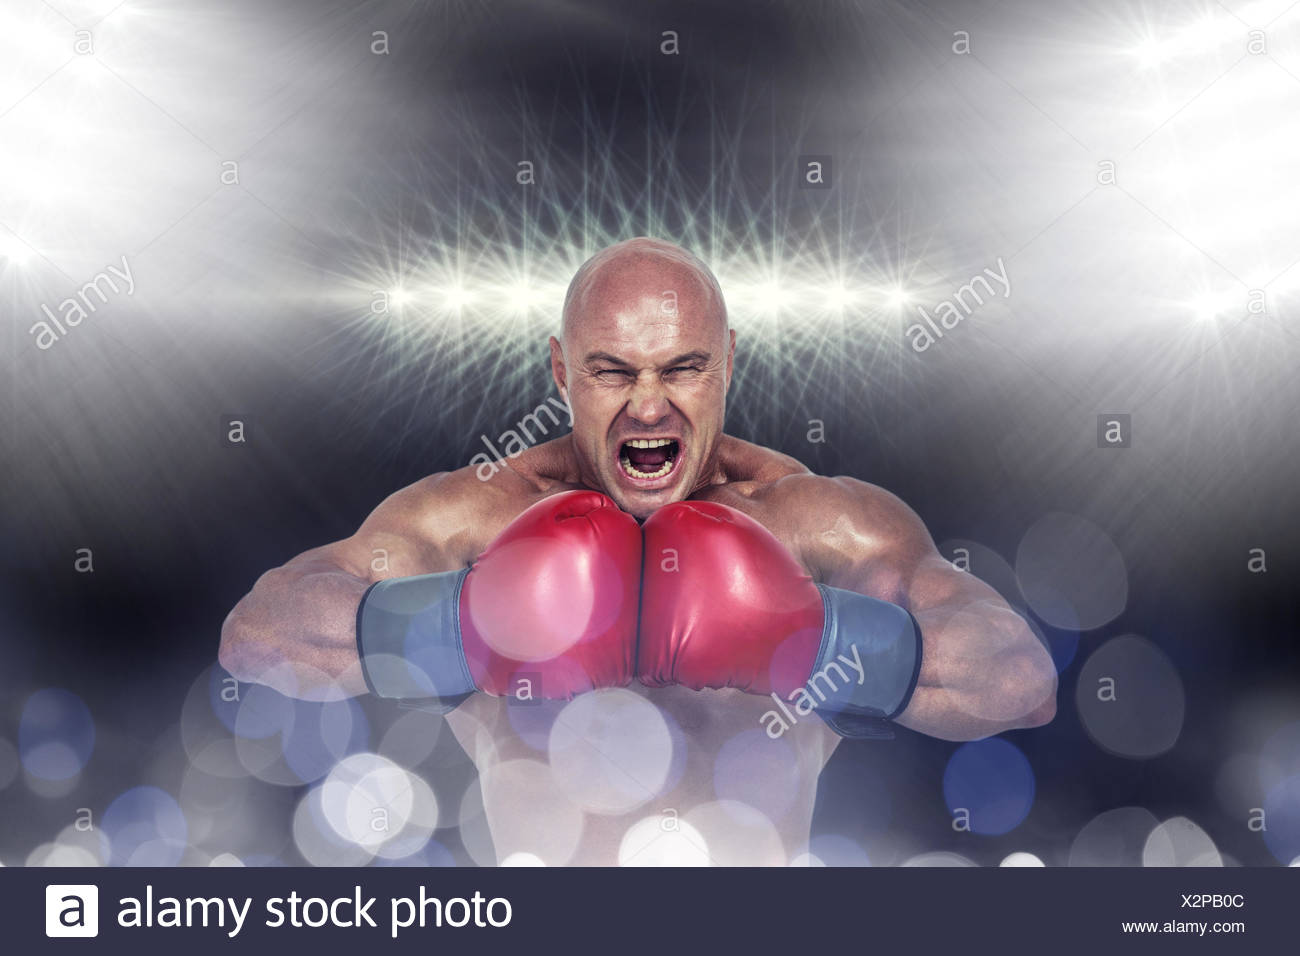 Composite image of aggressive boxer flexing muscles - Stock Image